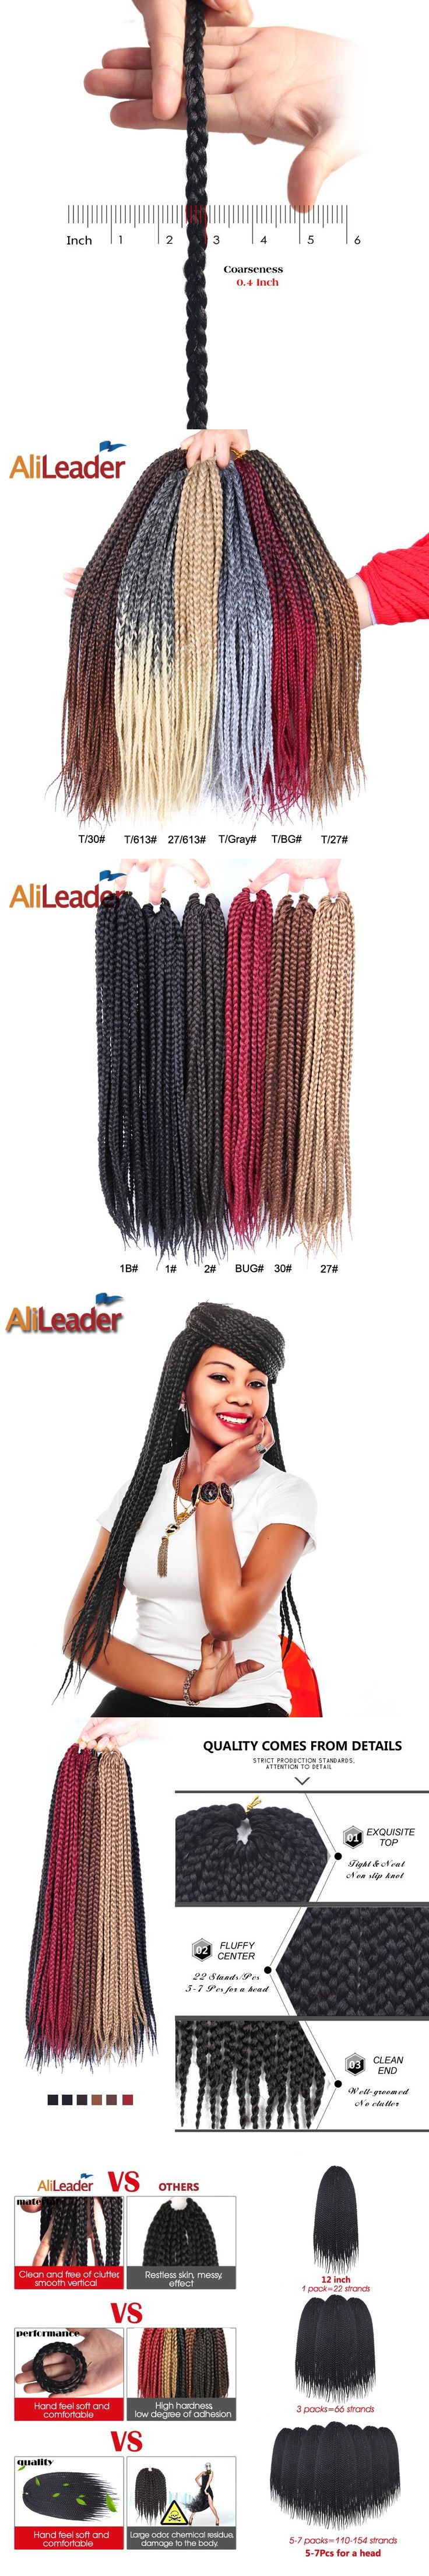 AliLeader Production Ombre Kanekalon Box Braids Crochet Hair Medium 12 16 20 24 30 Inch Afro Bulk Synthetic Hair Weave For Women